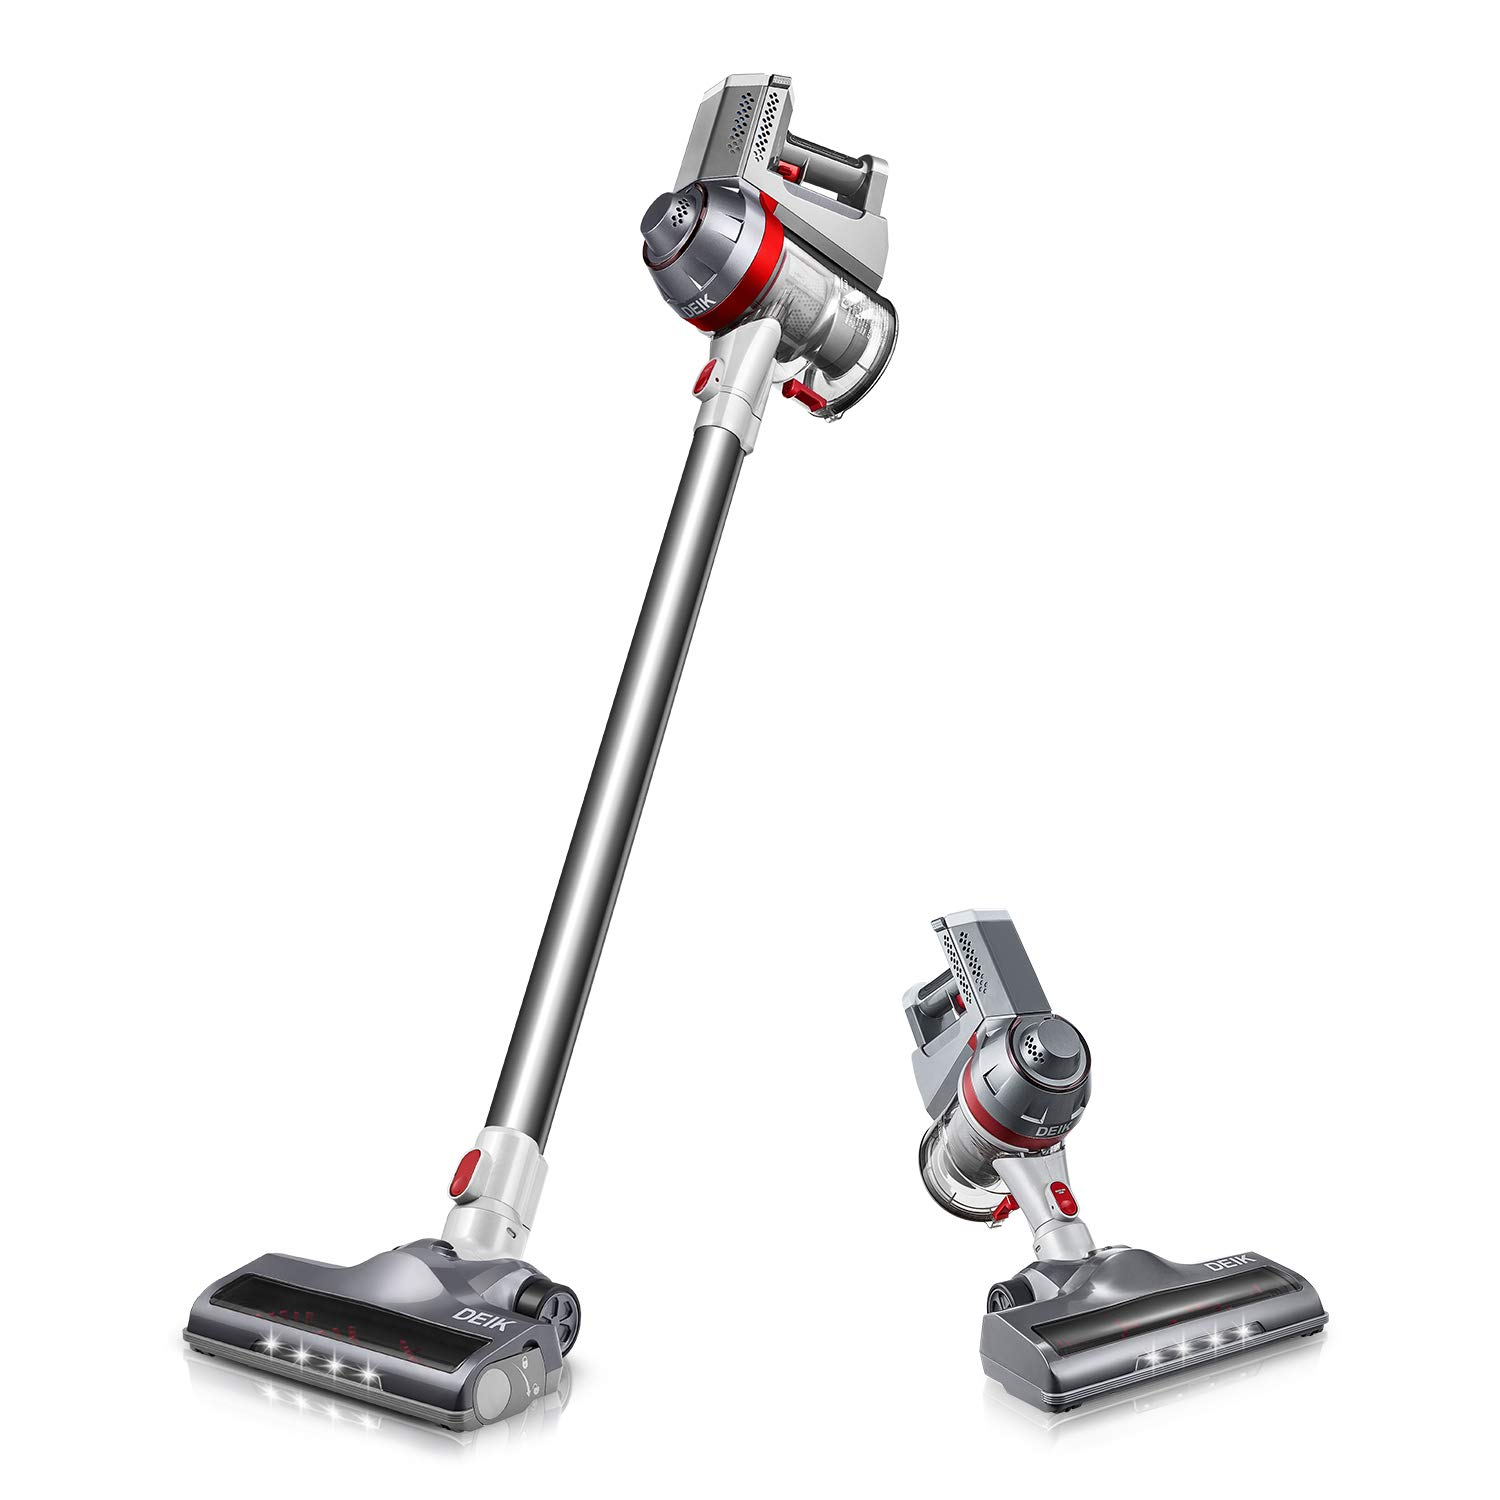 Deik Cordless Vacuum Cleaner, 2019 Upgrade Version, 2 in 1 Stick and Handheld Vacuum with Powerful Suction & LED Brush for Home and Car Cleaning - Silver